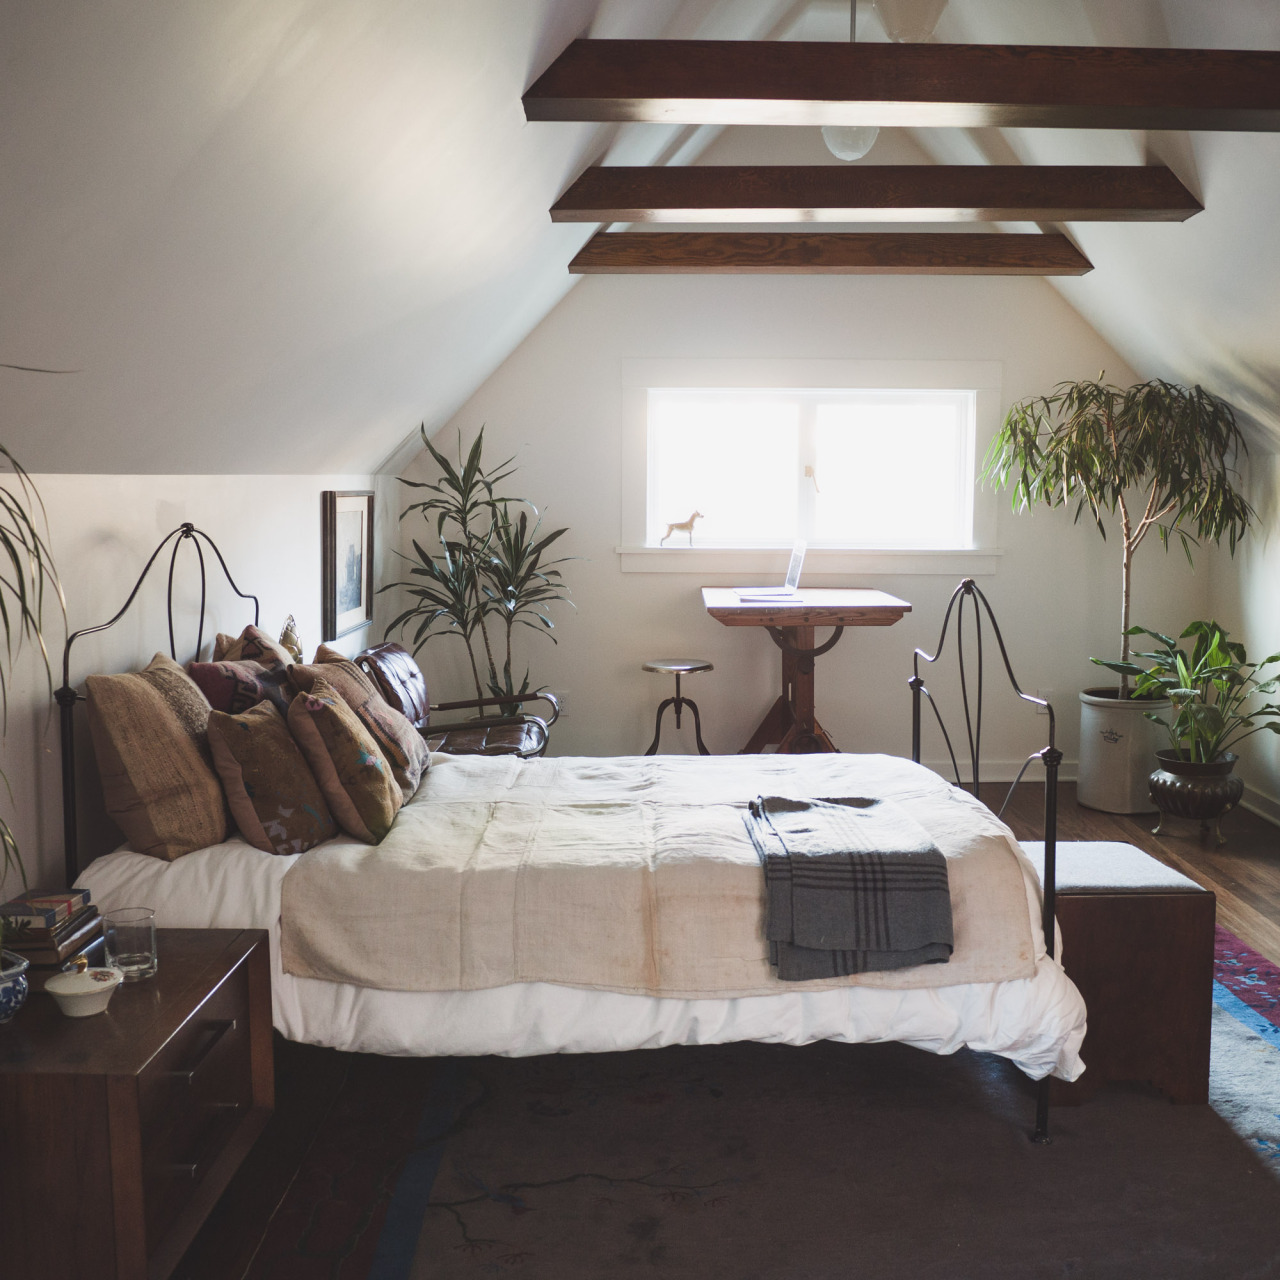 Image Result For Where The Rooms Are A Collection Of Our Lives